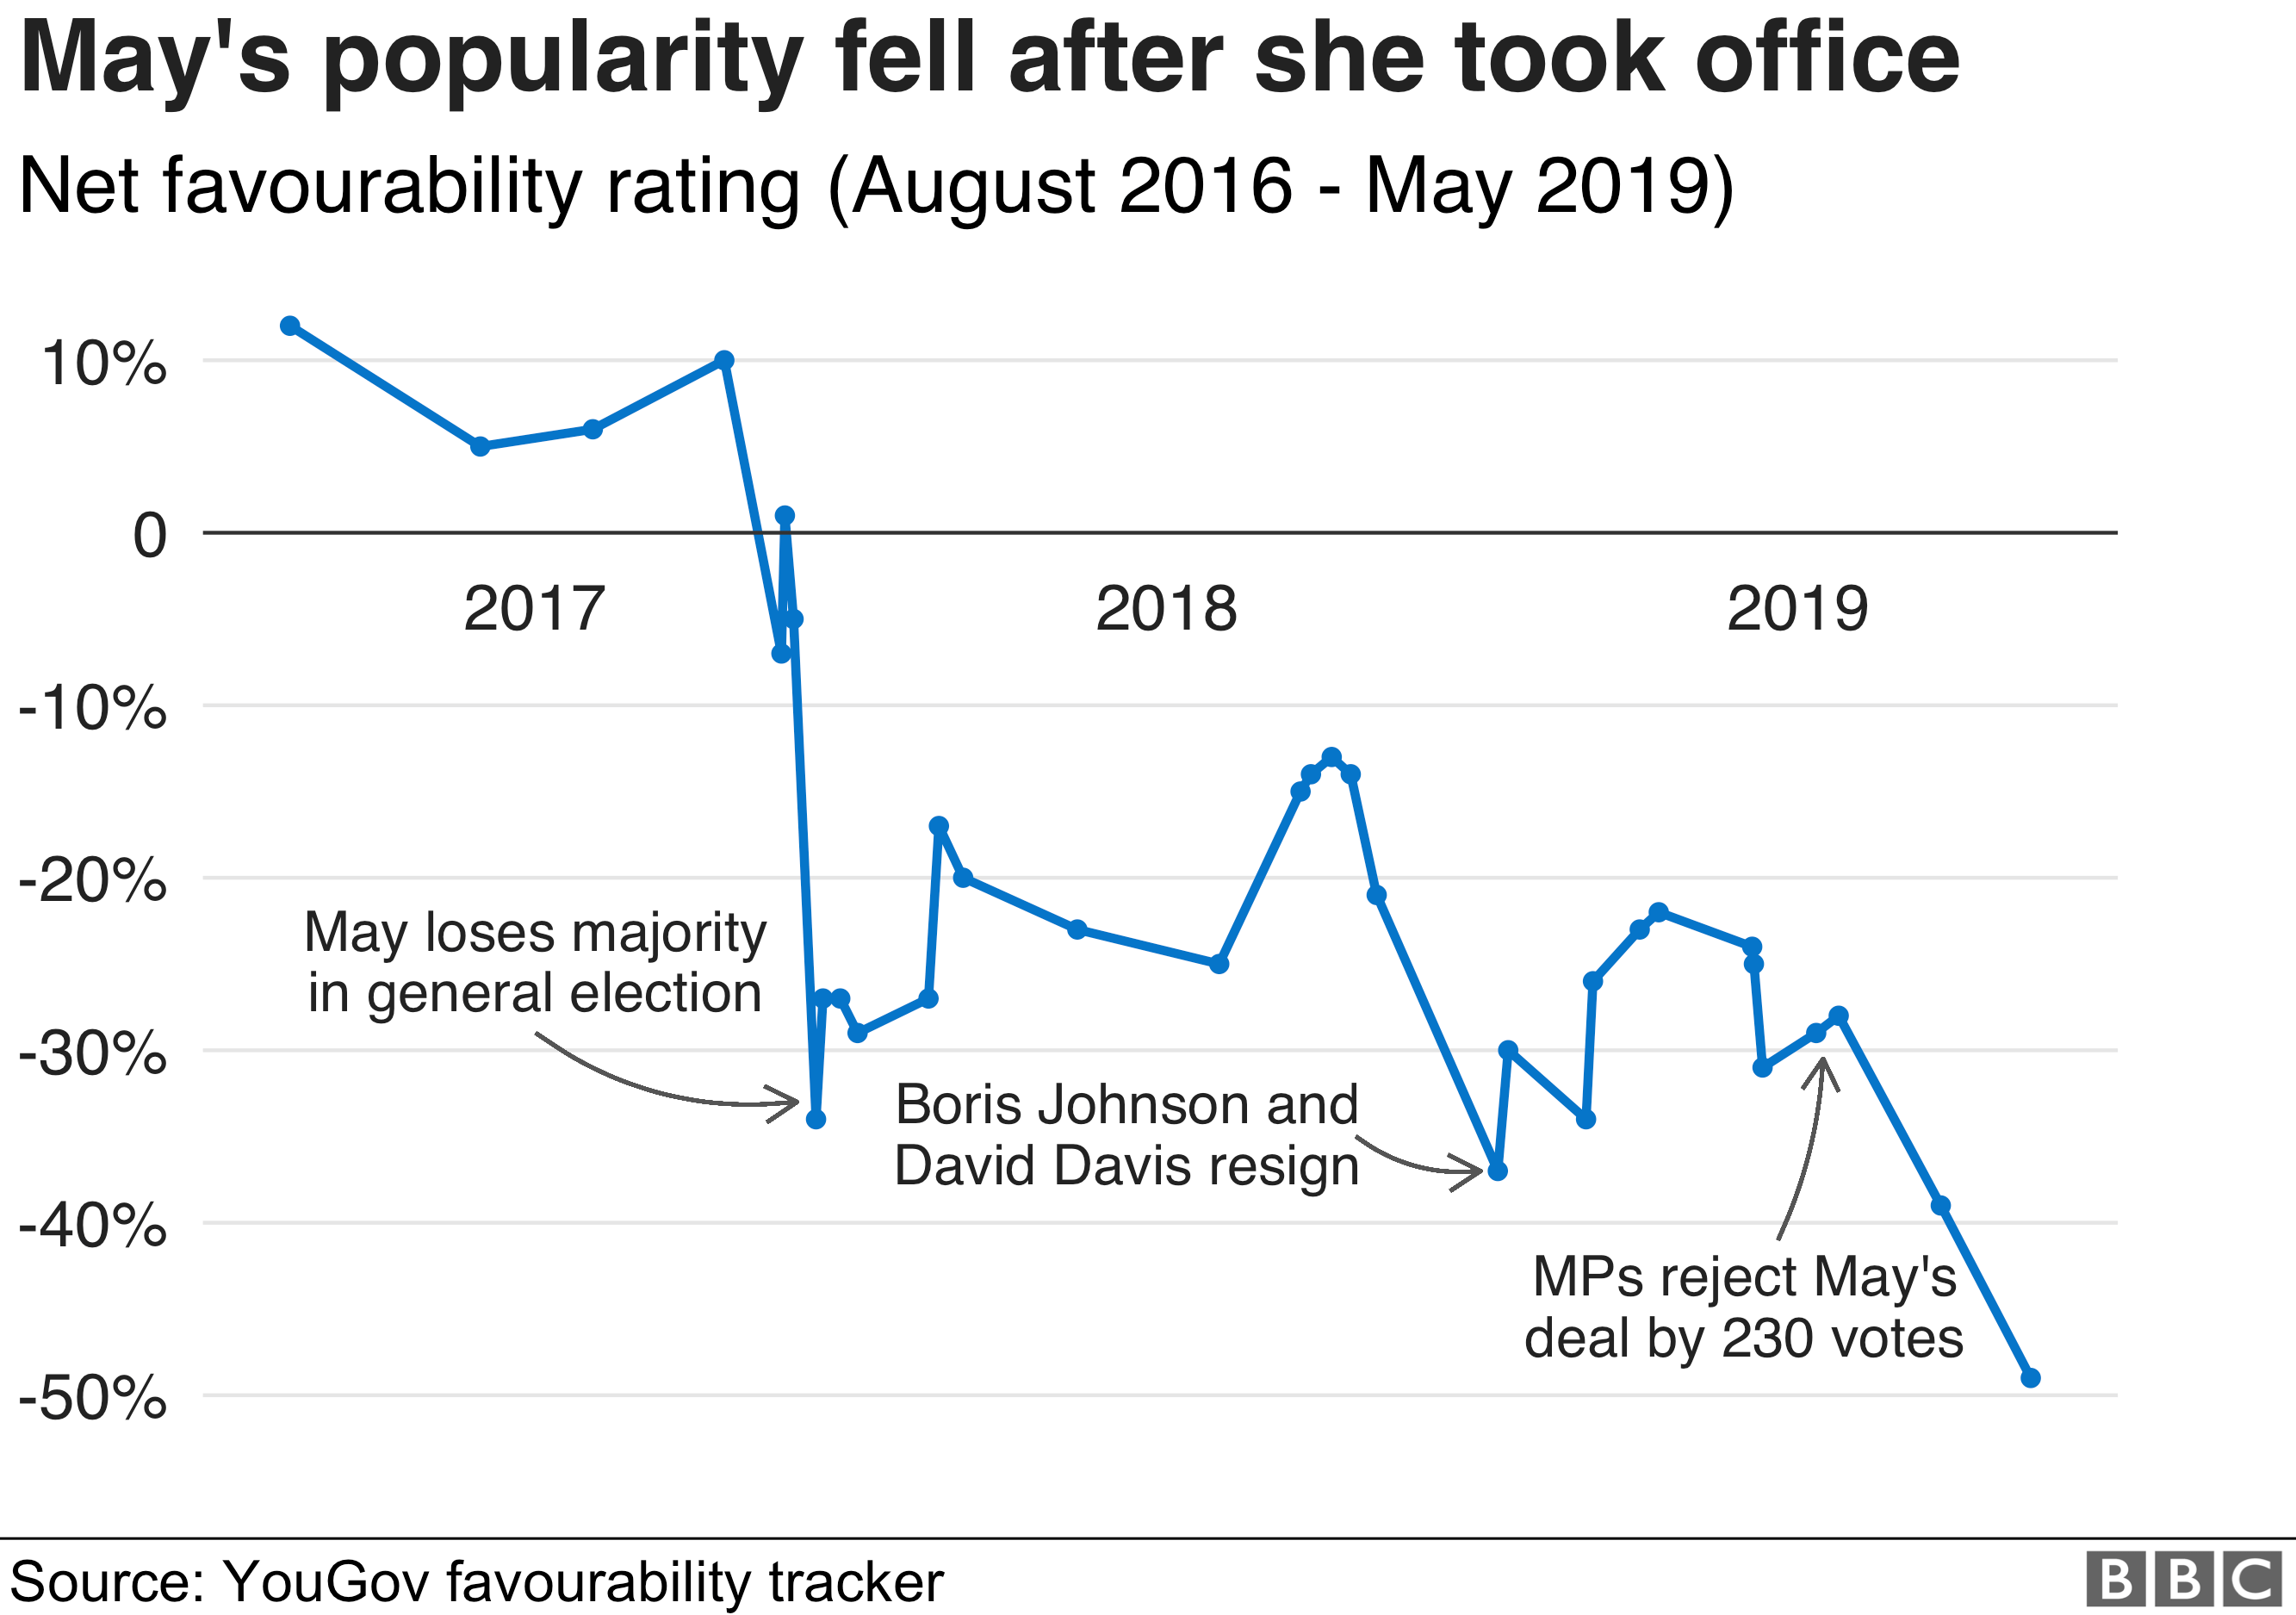 Chart showing how May's popularity fell since she took office